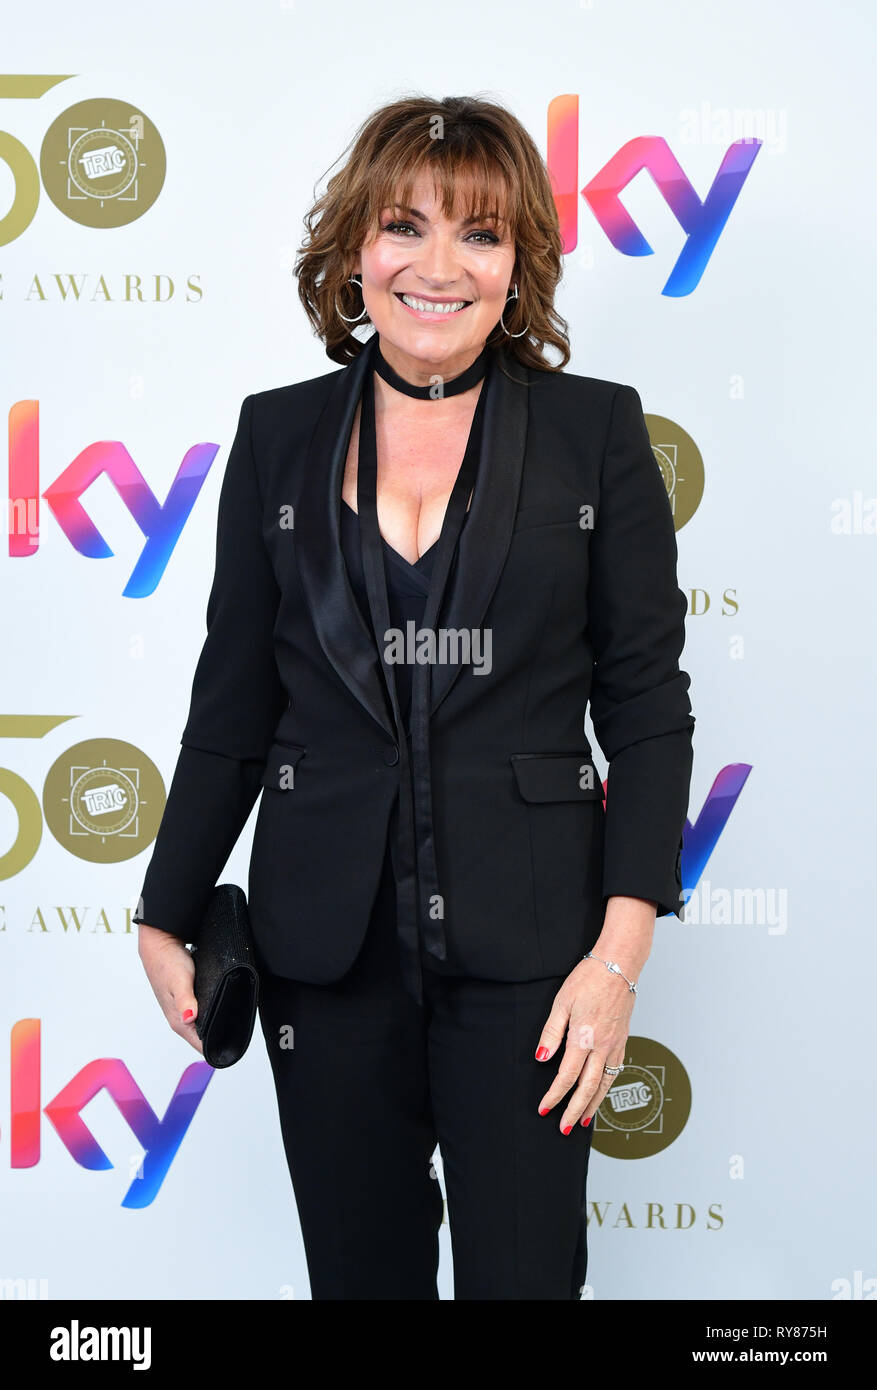 Lorraine Kelly attending the TRIC Awards 2019 50th Birthday Celebration held at the Grosvenor House Hotel, London. - Stock Image